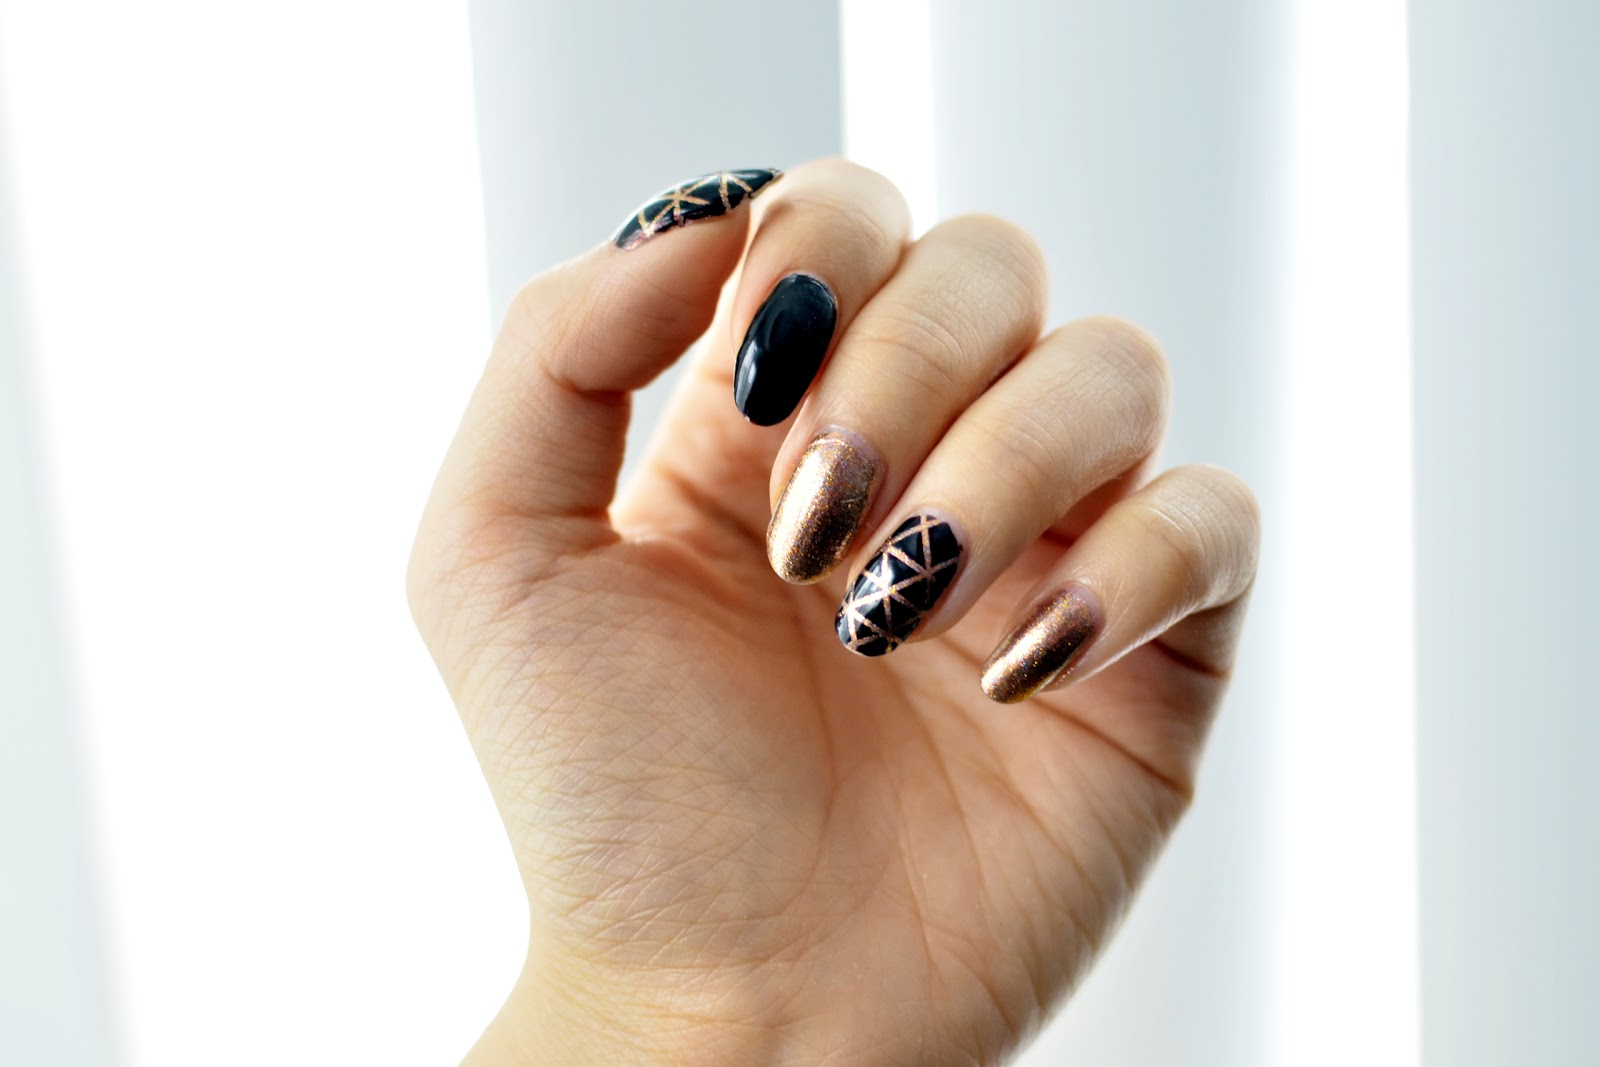 fun size beauty: #MANIMONDAY - Geometric Nail Art ft. Formula X ...